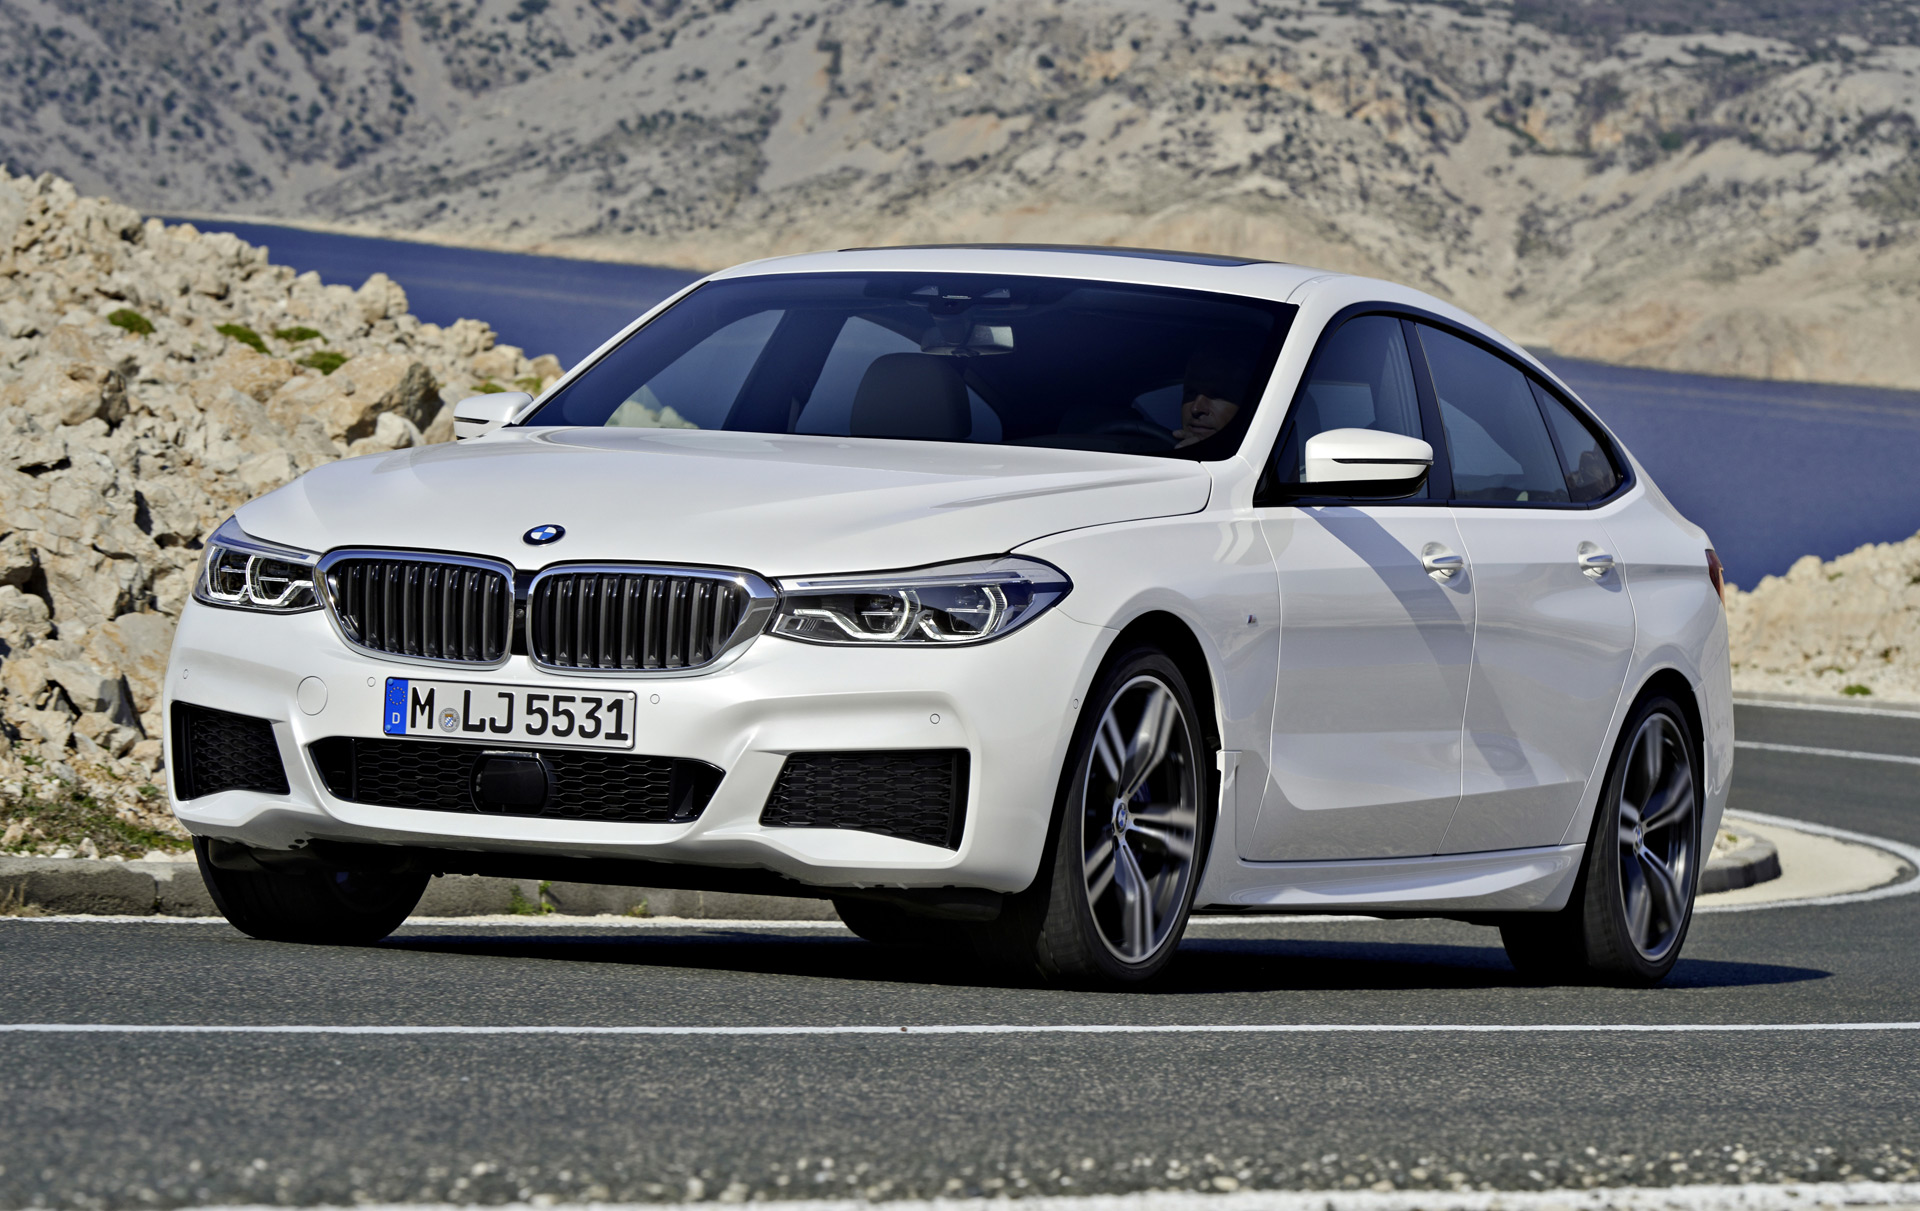 2018 Bmw 6 Series Performance Review The Car Connection